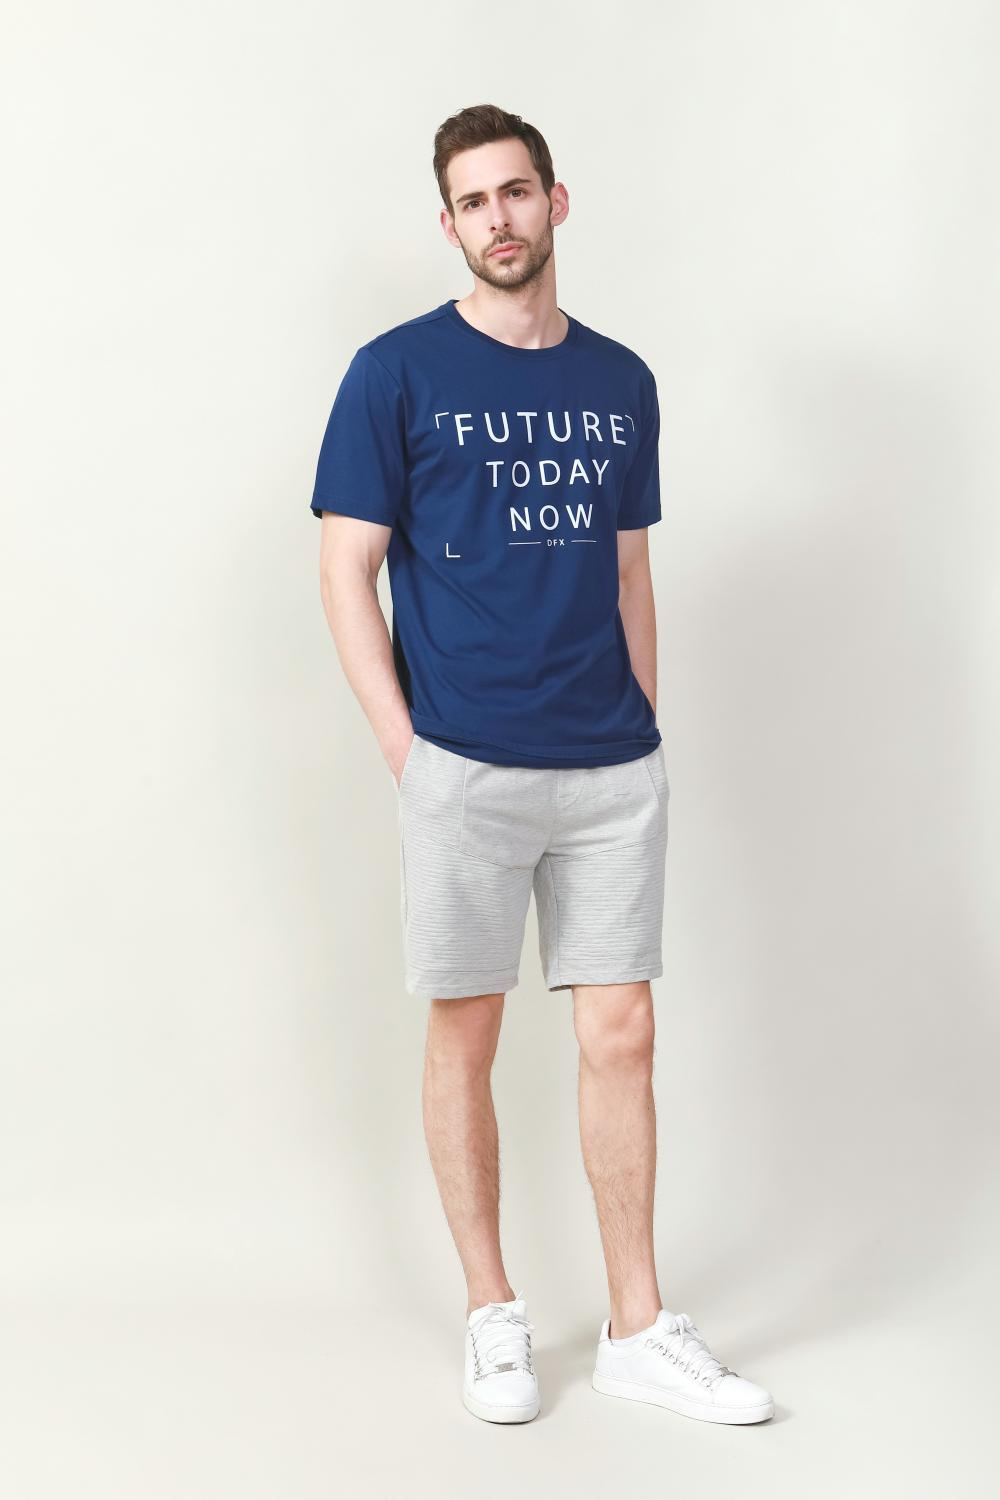 Men's fashion shorts